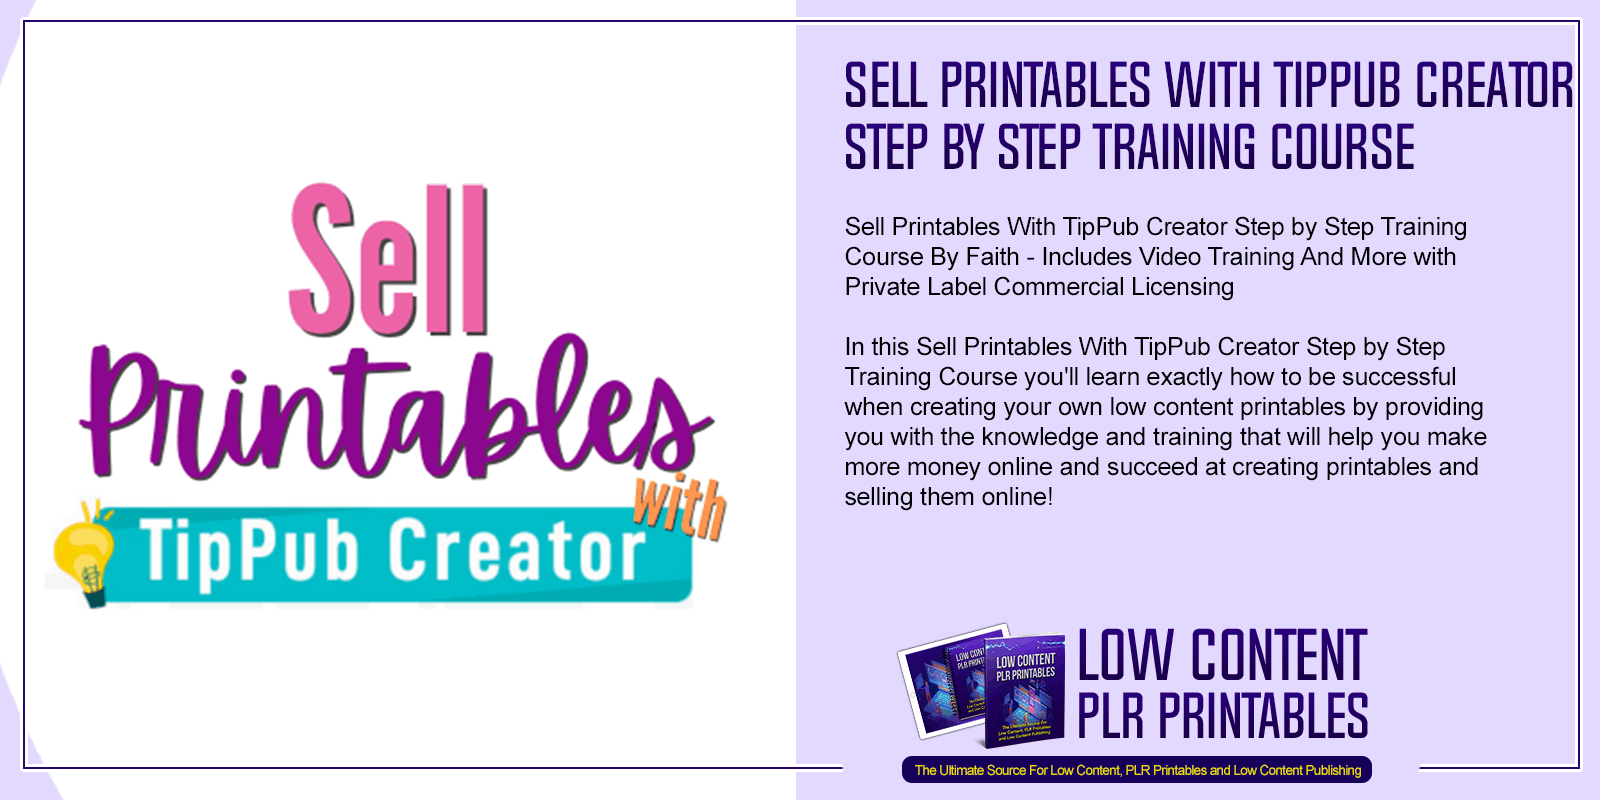 Sell Printables With TipPub Creator Step by Step Training Course